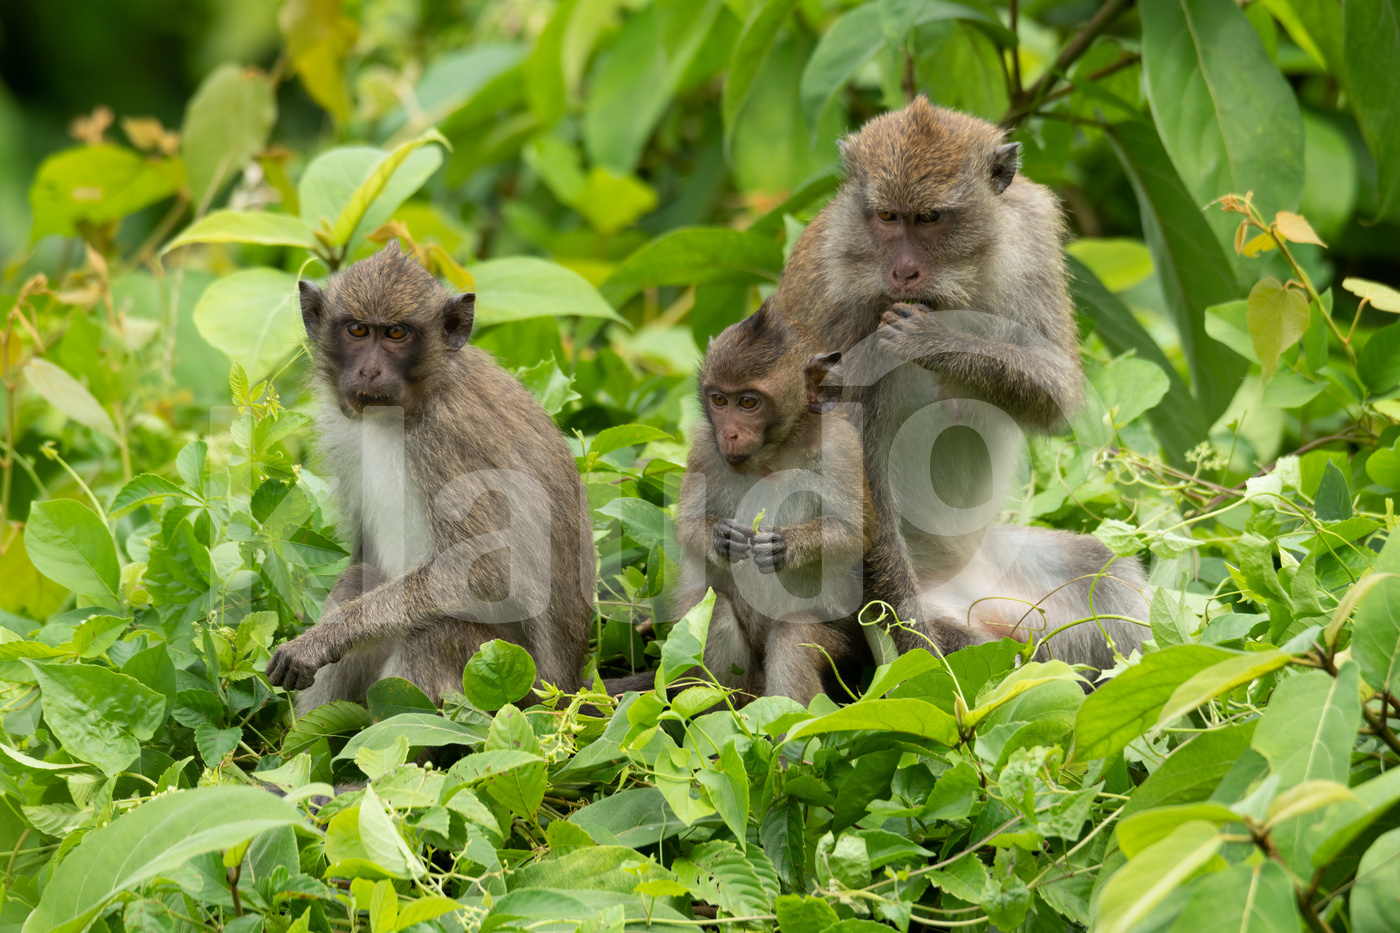 Female Crab-eating macaque with her two young kids sitting and eating leaves on top of the bush